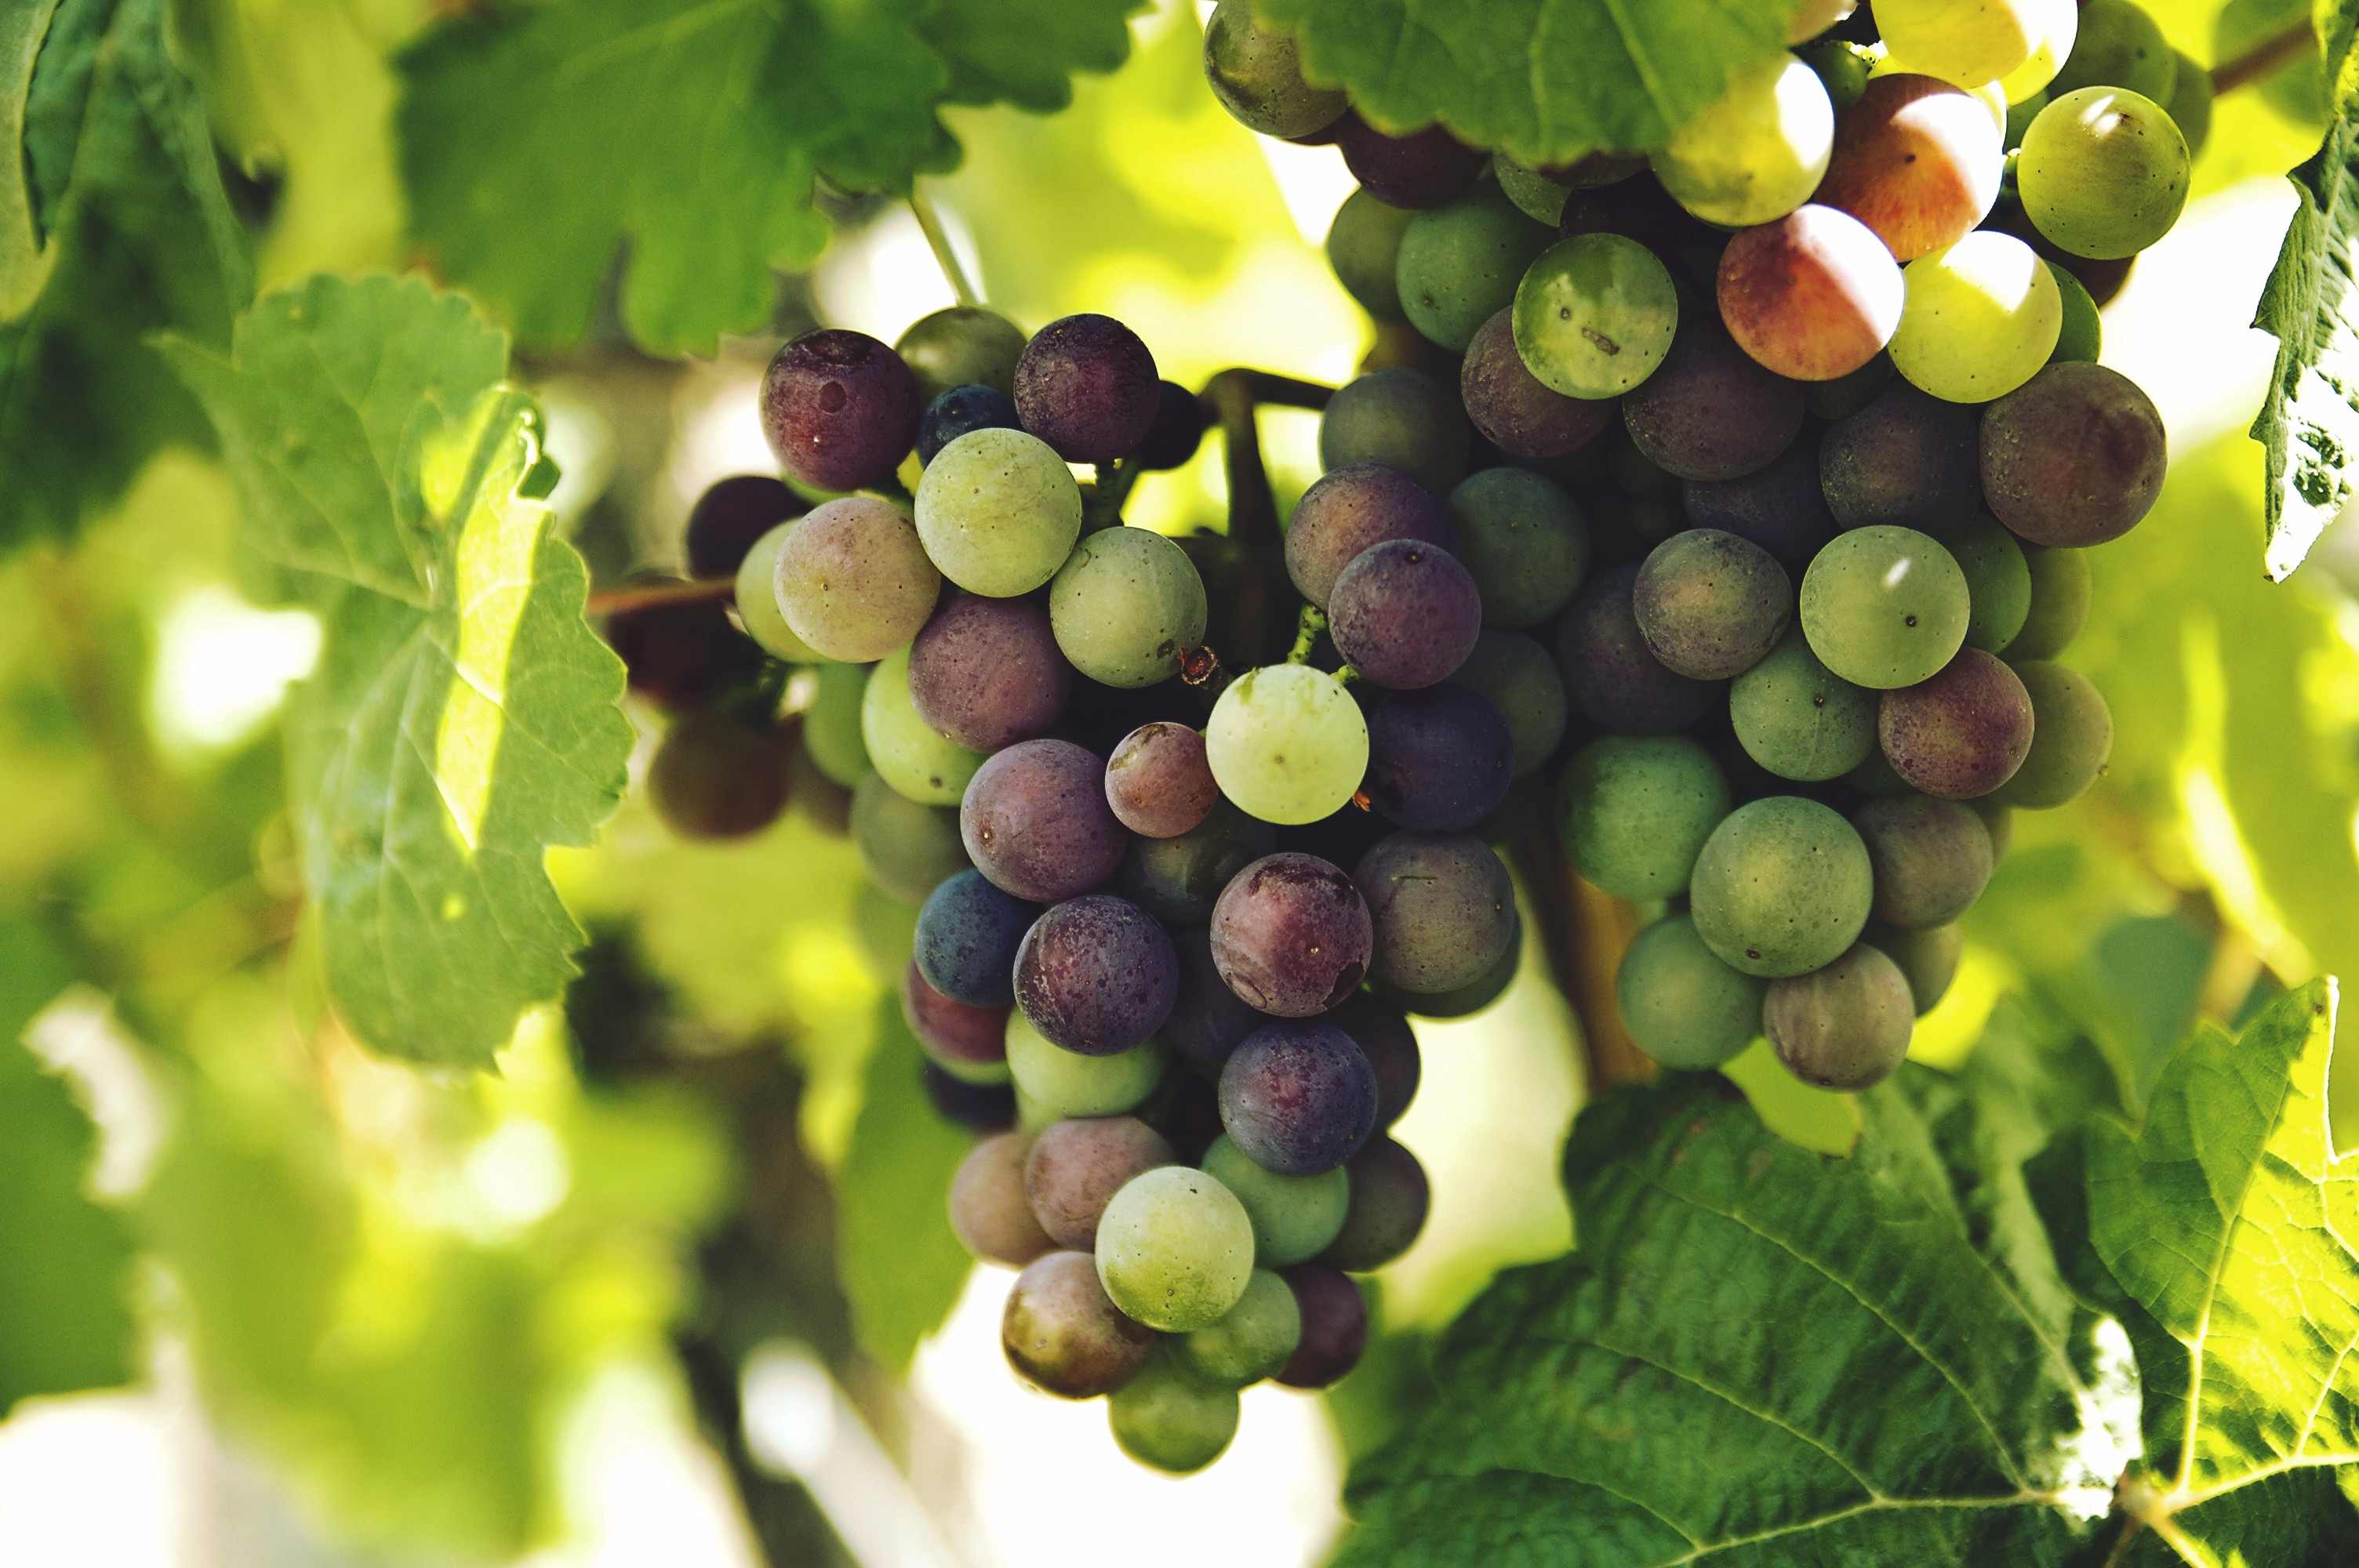 A cluster of grapes at véraison with some green berries and some red berries.